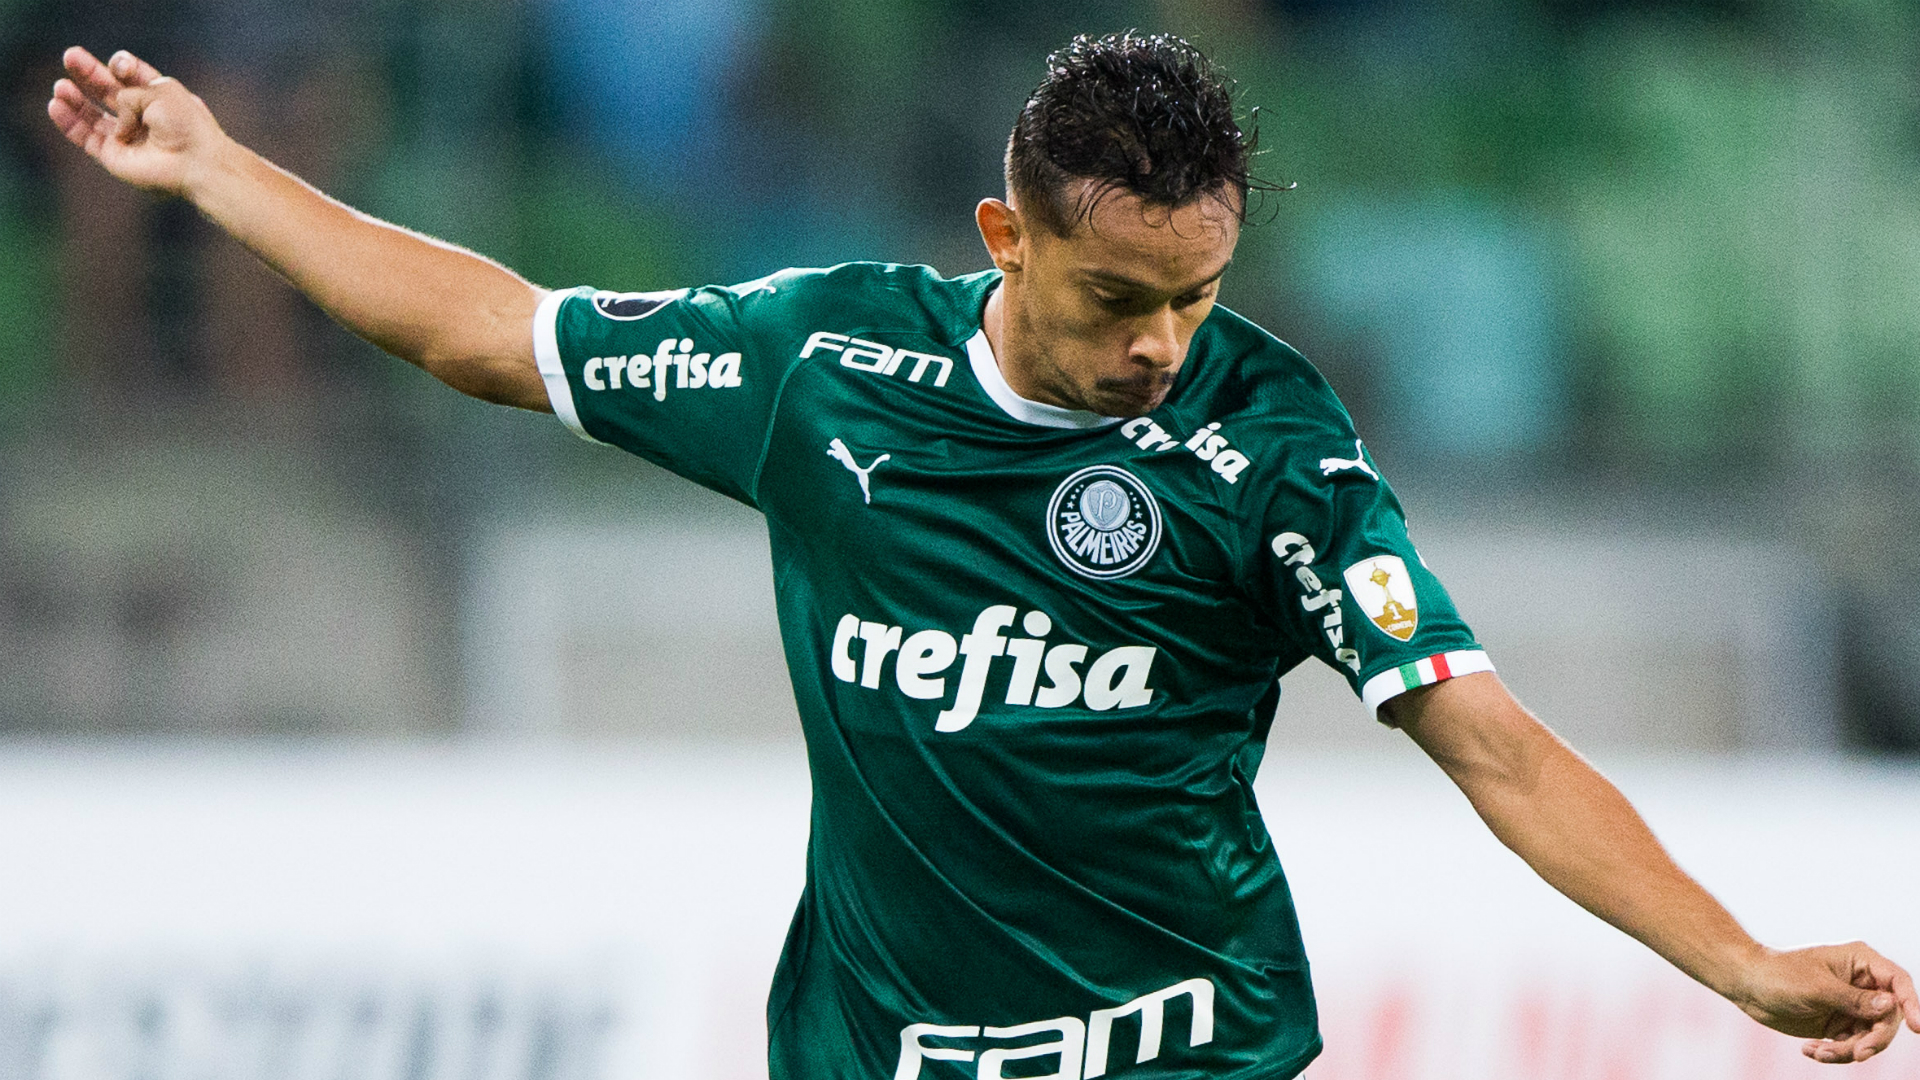 Copa Libertadores Review: Palmeiras, San Lorenzo punch tickets into last 16